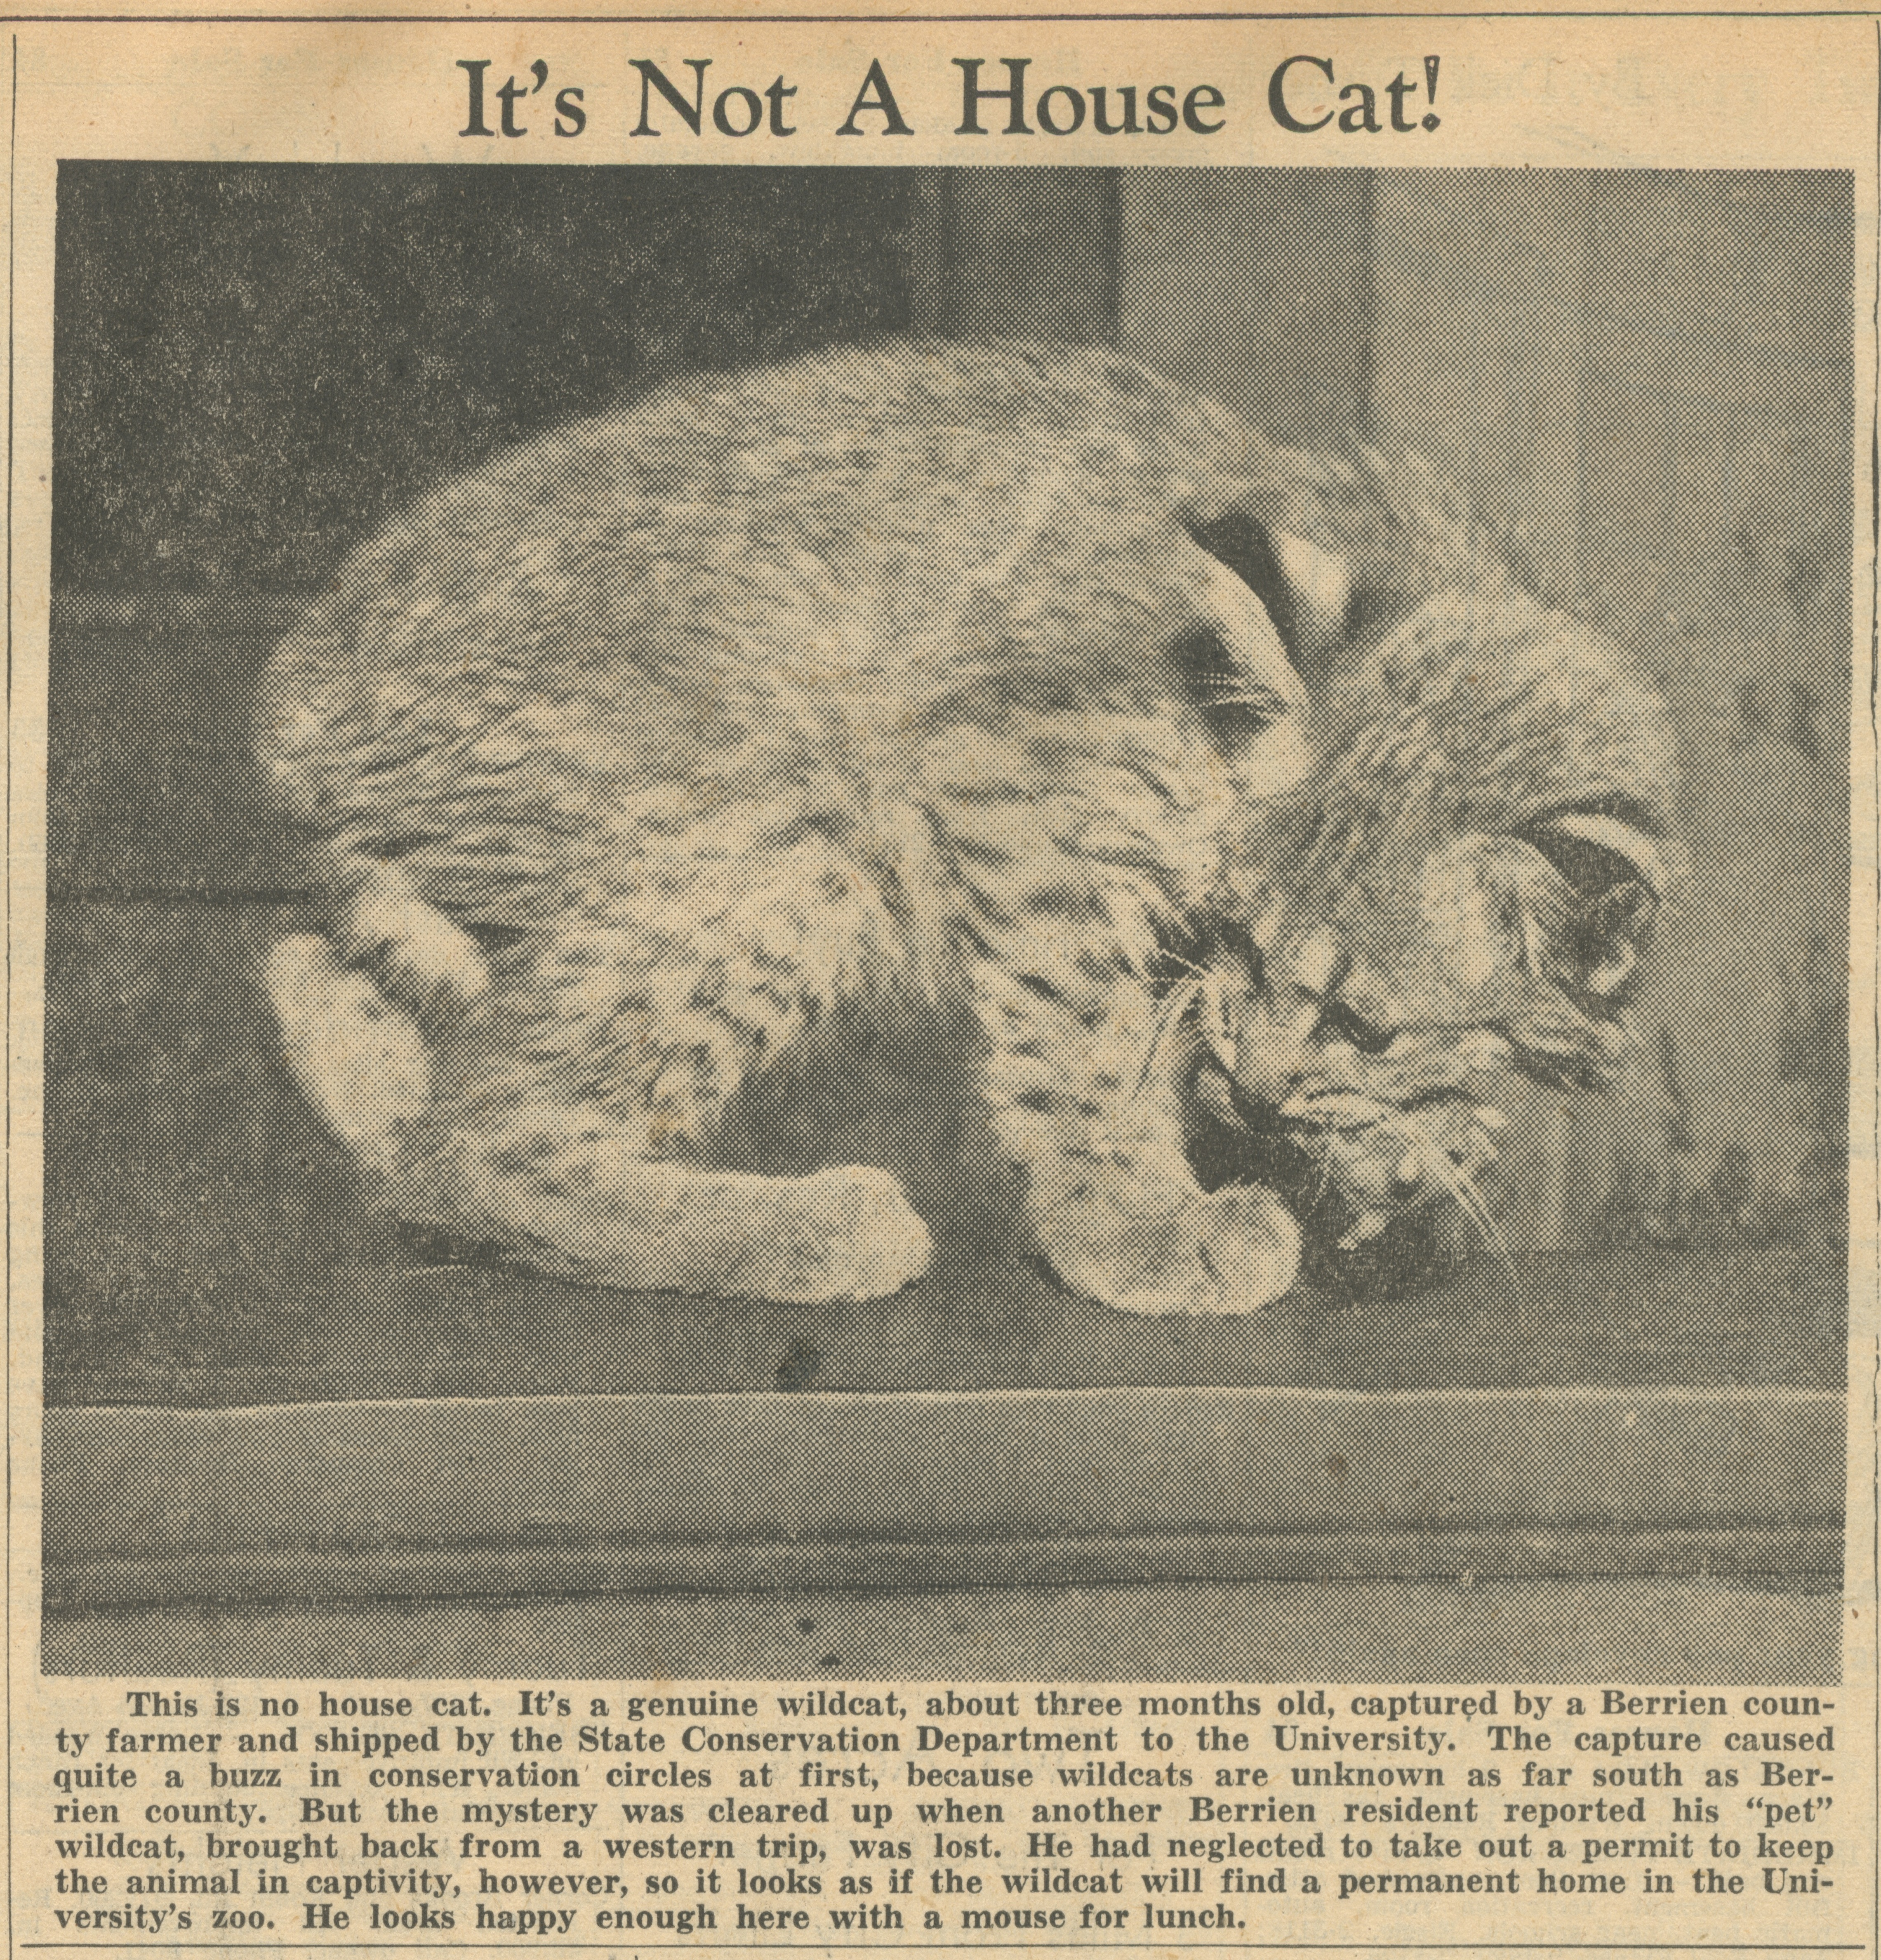 It's Not A House Cat! image